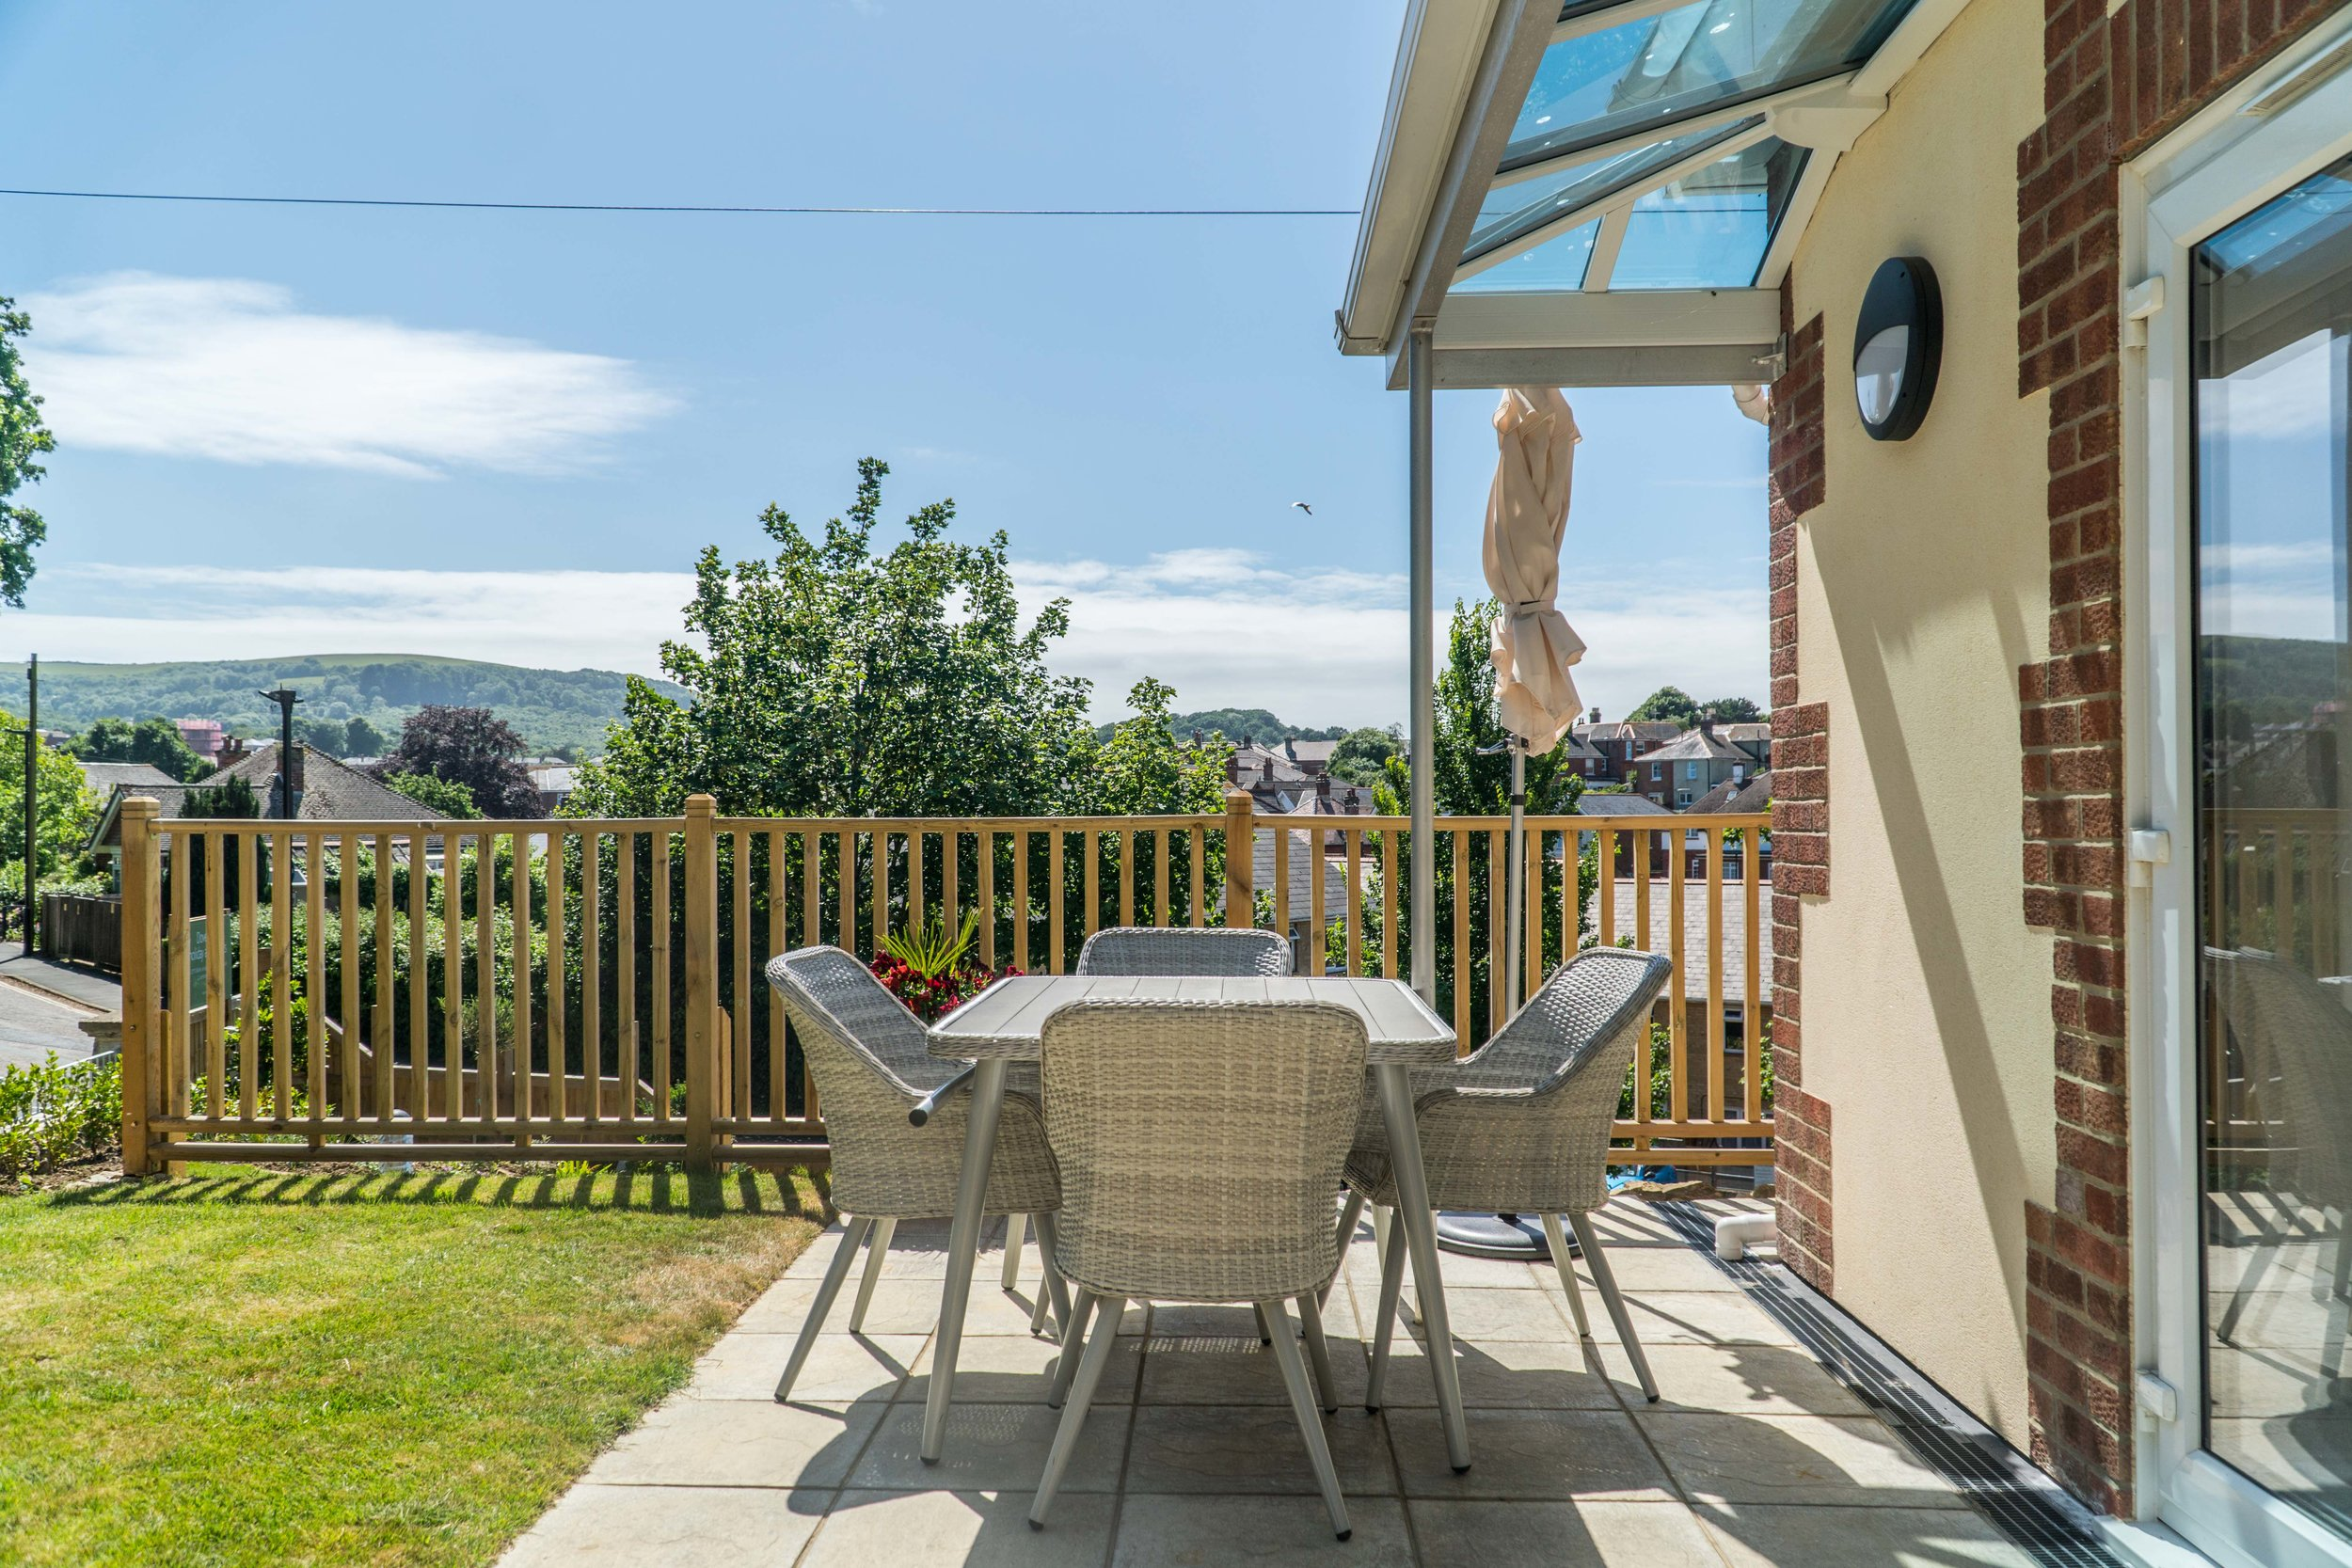 Vectis Holiday Homes - Holiday Apartments